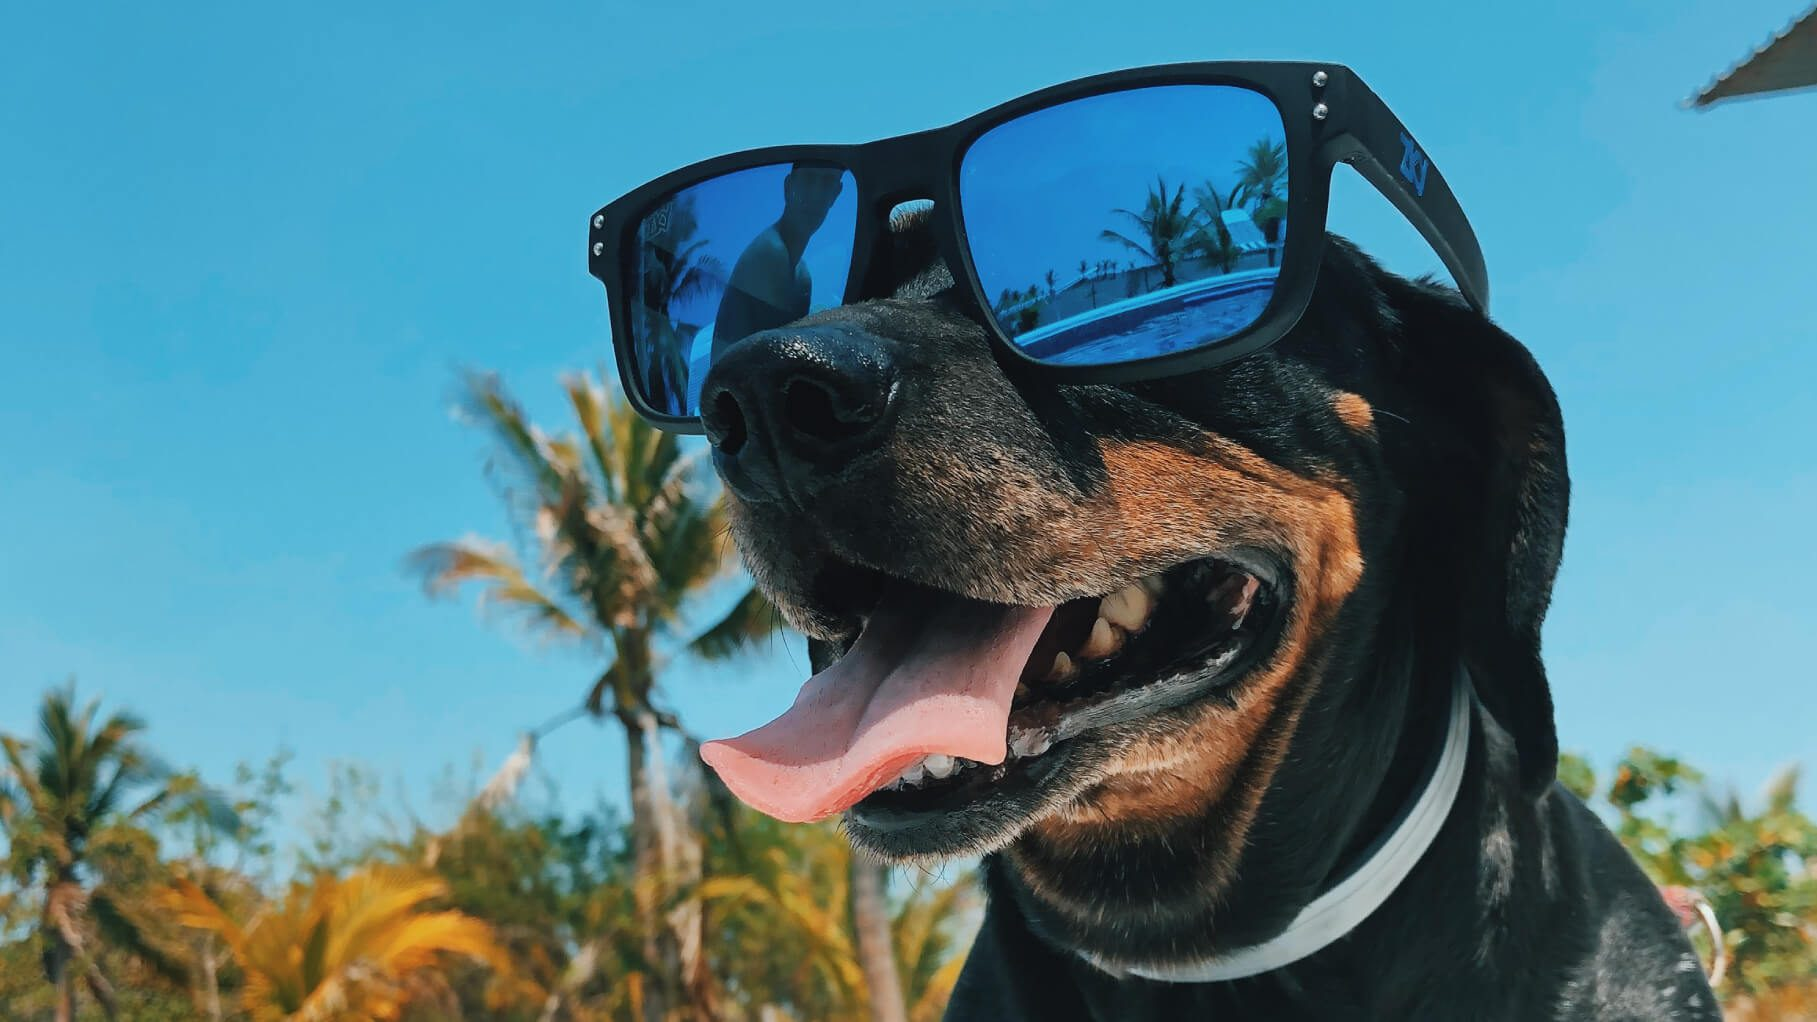 dog wearing sunglasses in the chicago heat